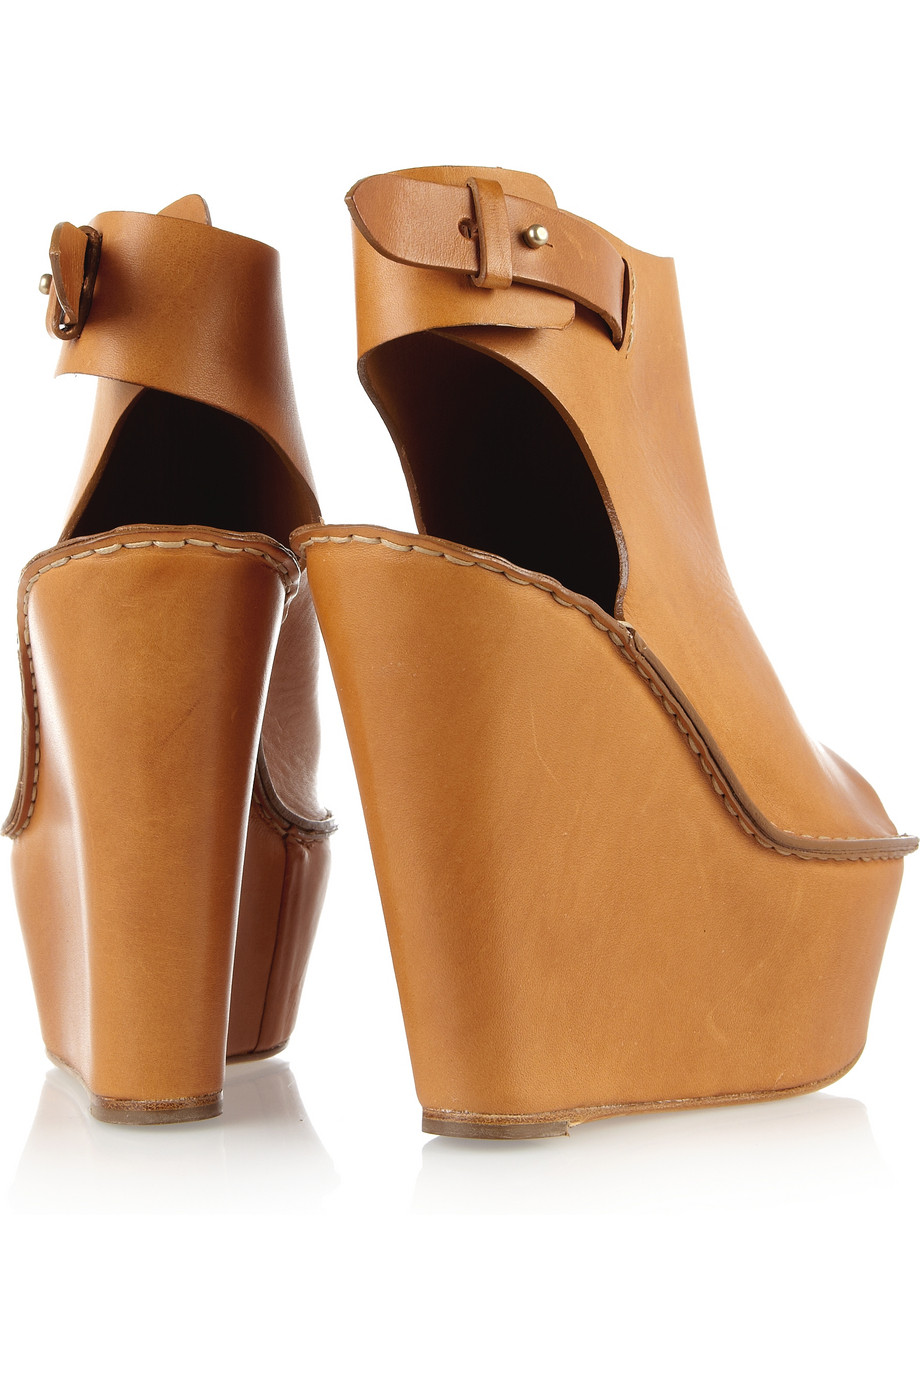 e0a6b00ddf2 Chloé Peep-toe Leather Wedges in Brown - Lyst